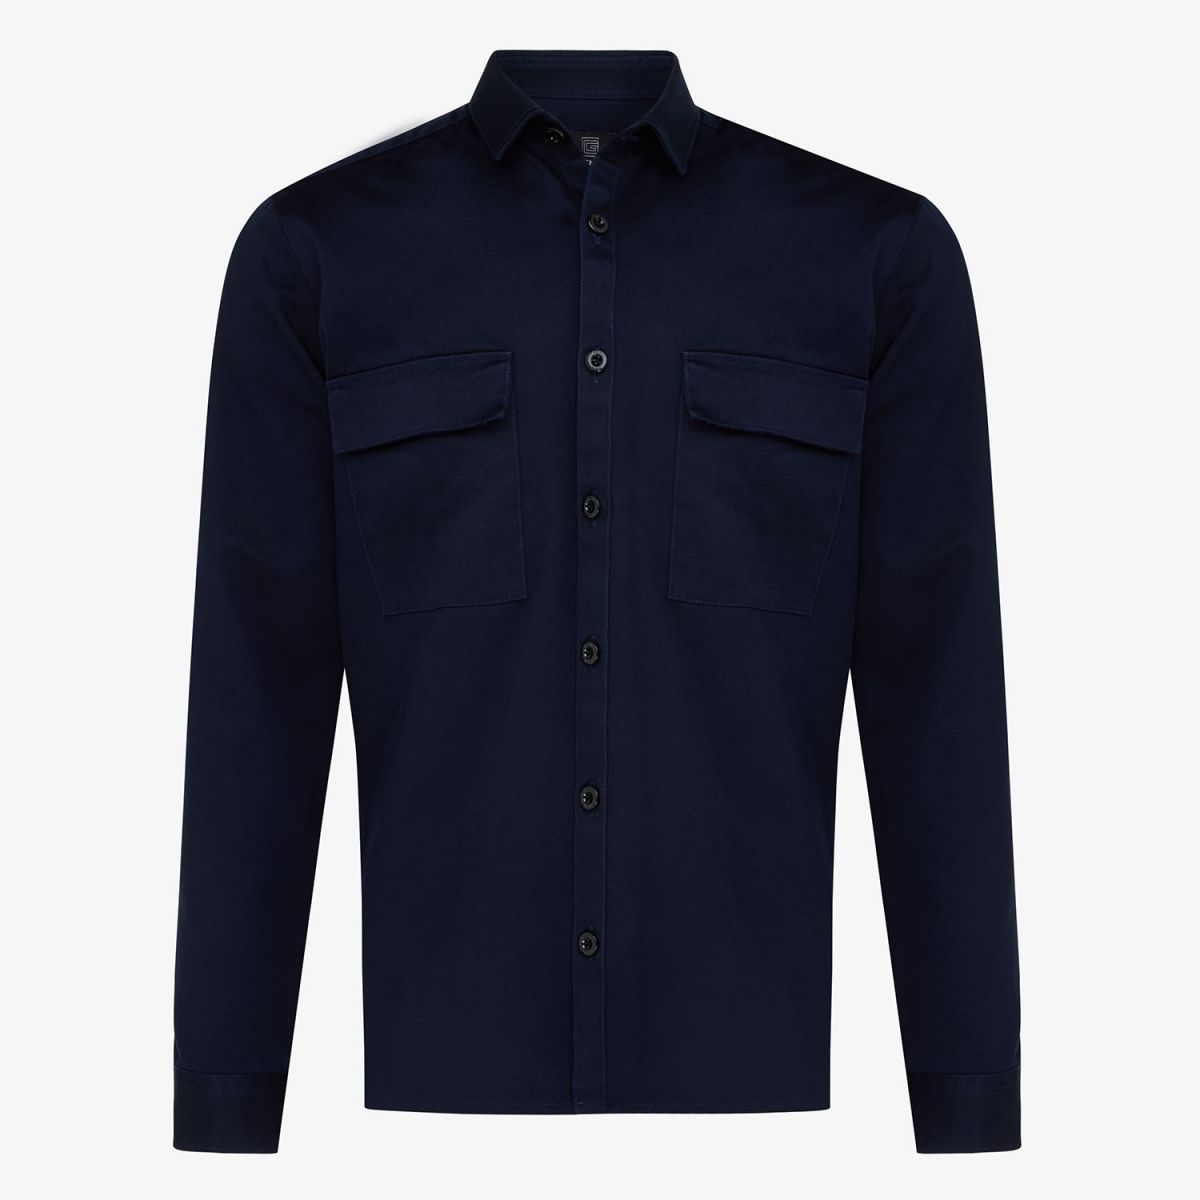 SHIRT JACKET NAVY